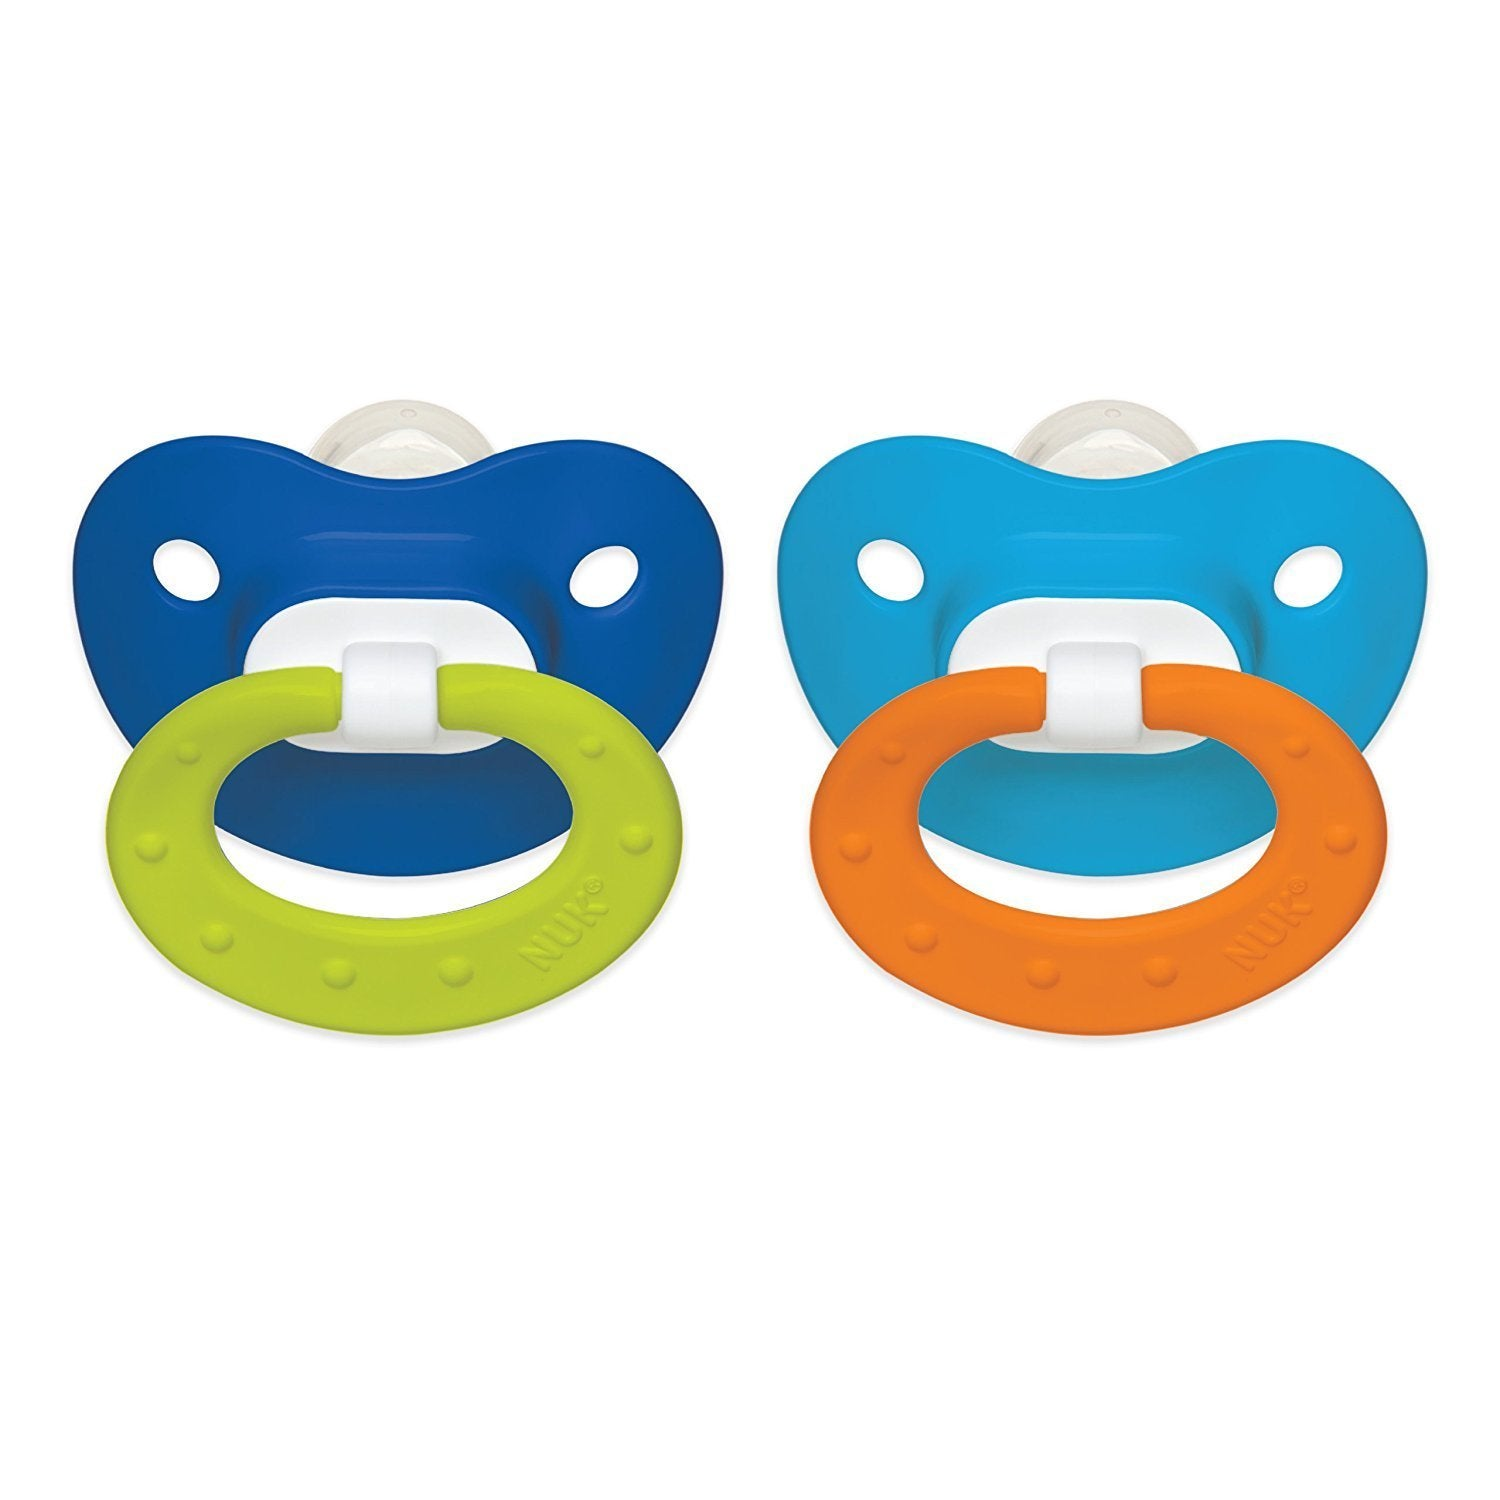 Nu-kote Blue/Blue Juicy 6-18 Months Silicone Orthodontic ...